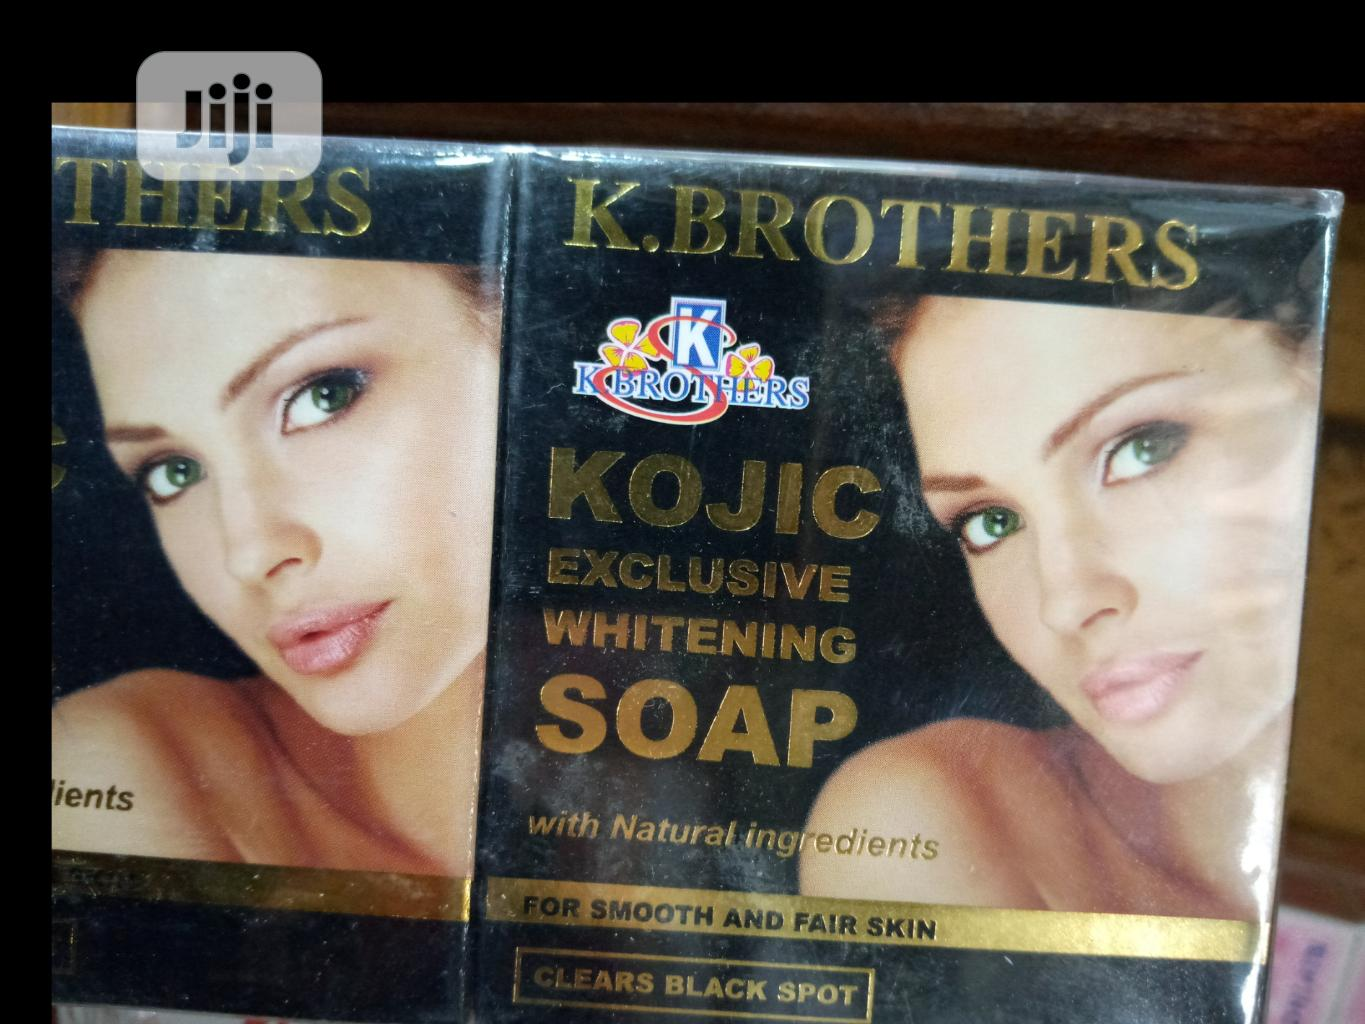 K. Brothers Kojic Exclusive Whitening Soap